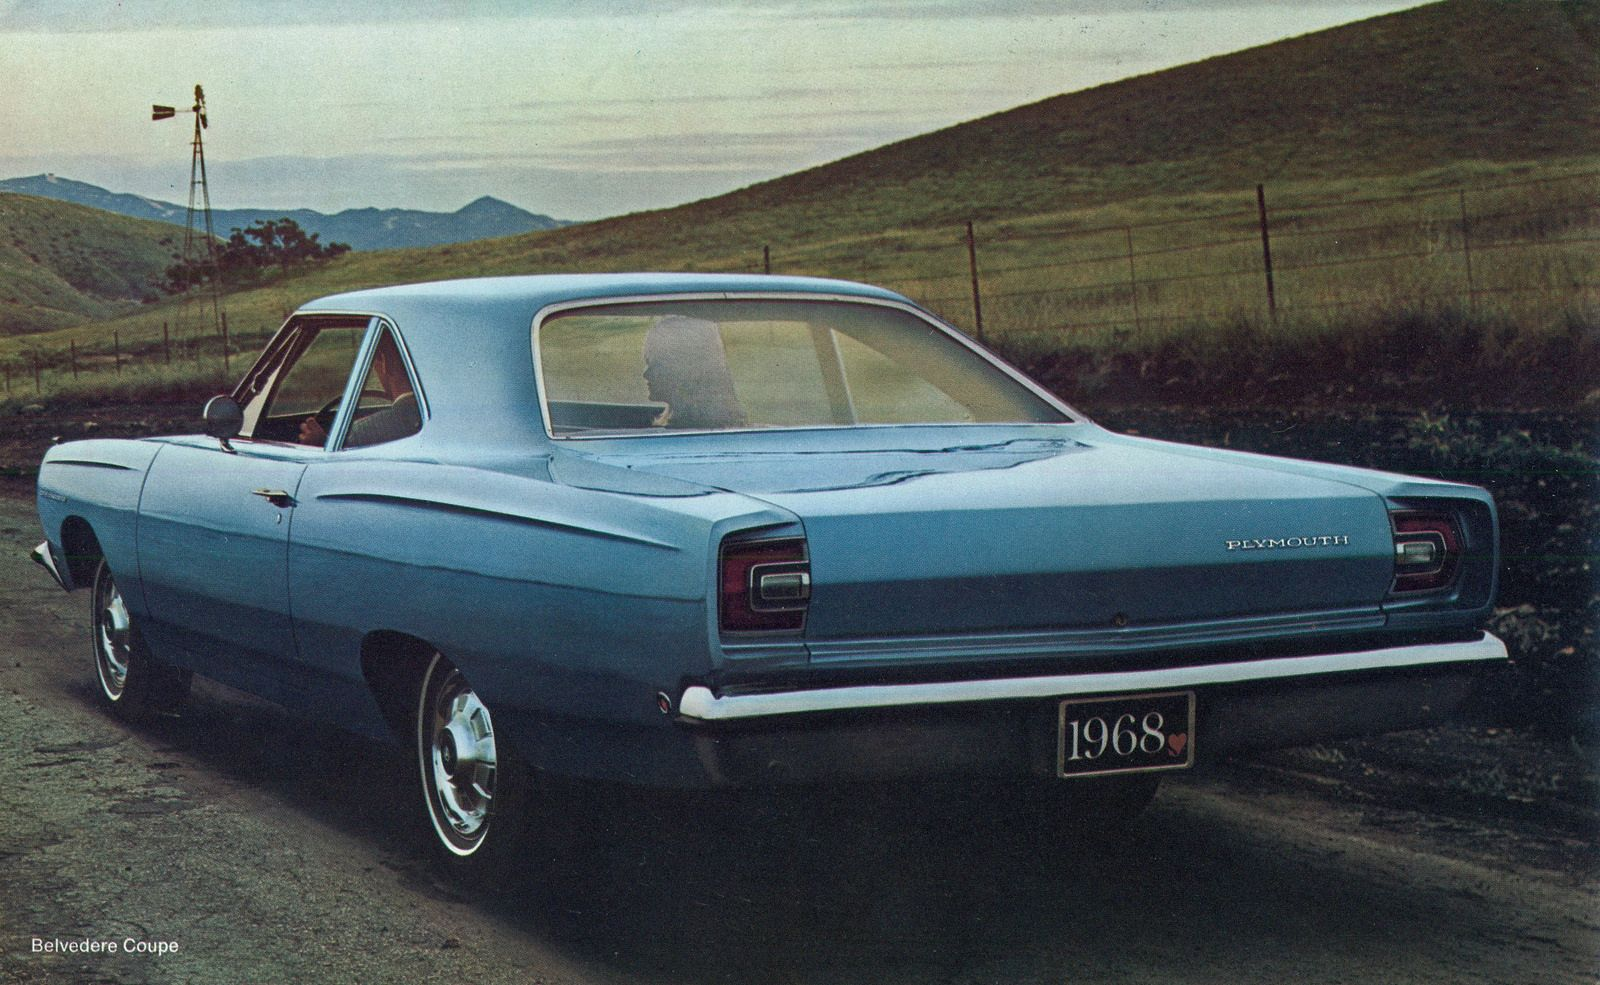 1968 Plymouth Belvedere 2 Door Coupe Vintage Car Ads And Signs 69 Fury Radiator Hot Cars Dodge Muscle